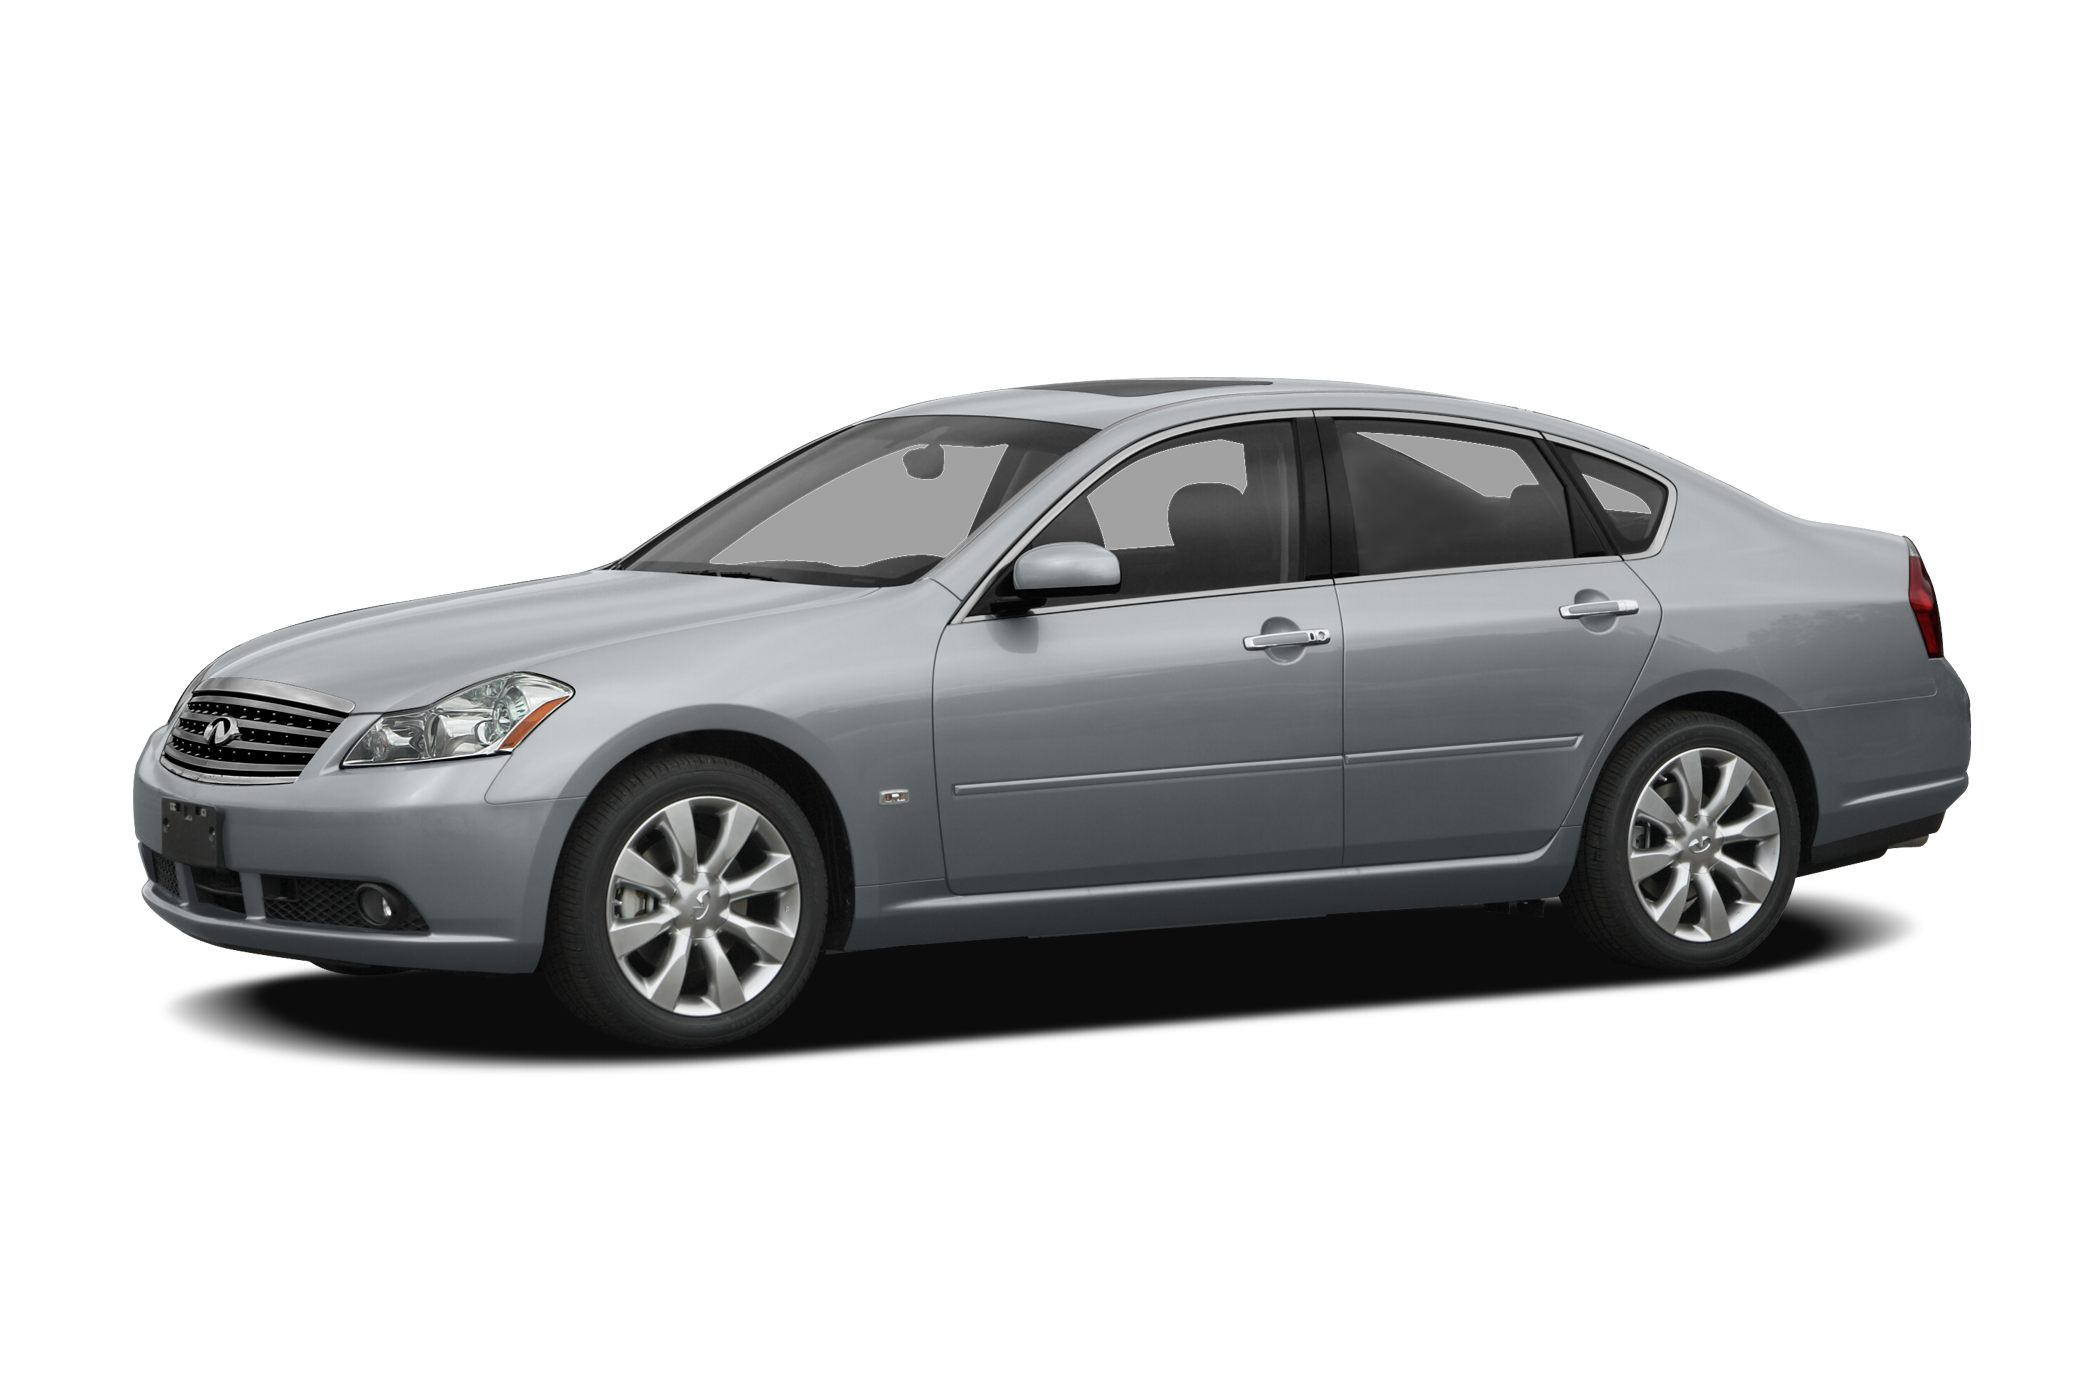 2007 Infiniti M45 Sport Sedan for sale in Chantilly for $23,895 with 46,870 miles